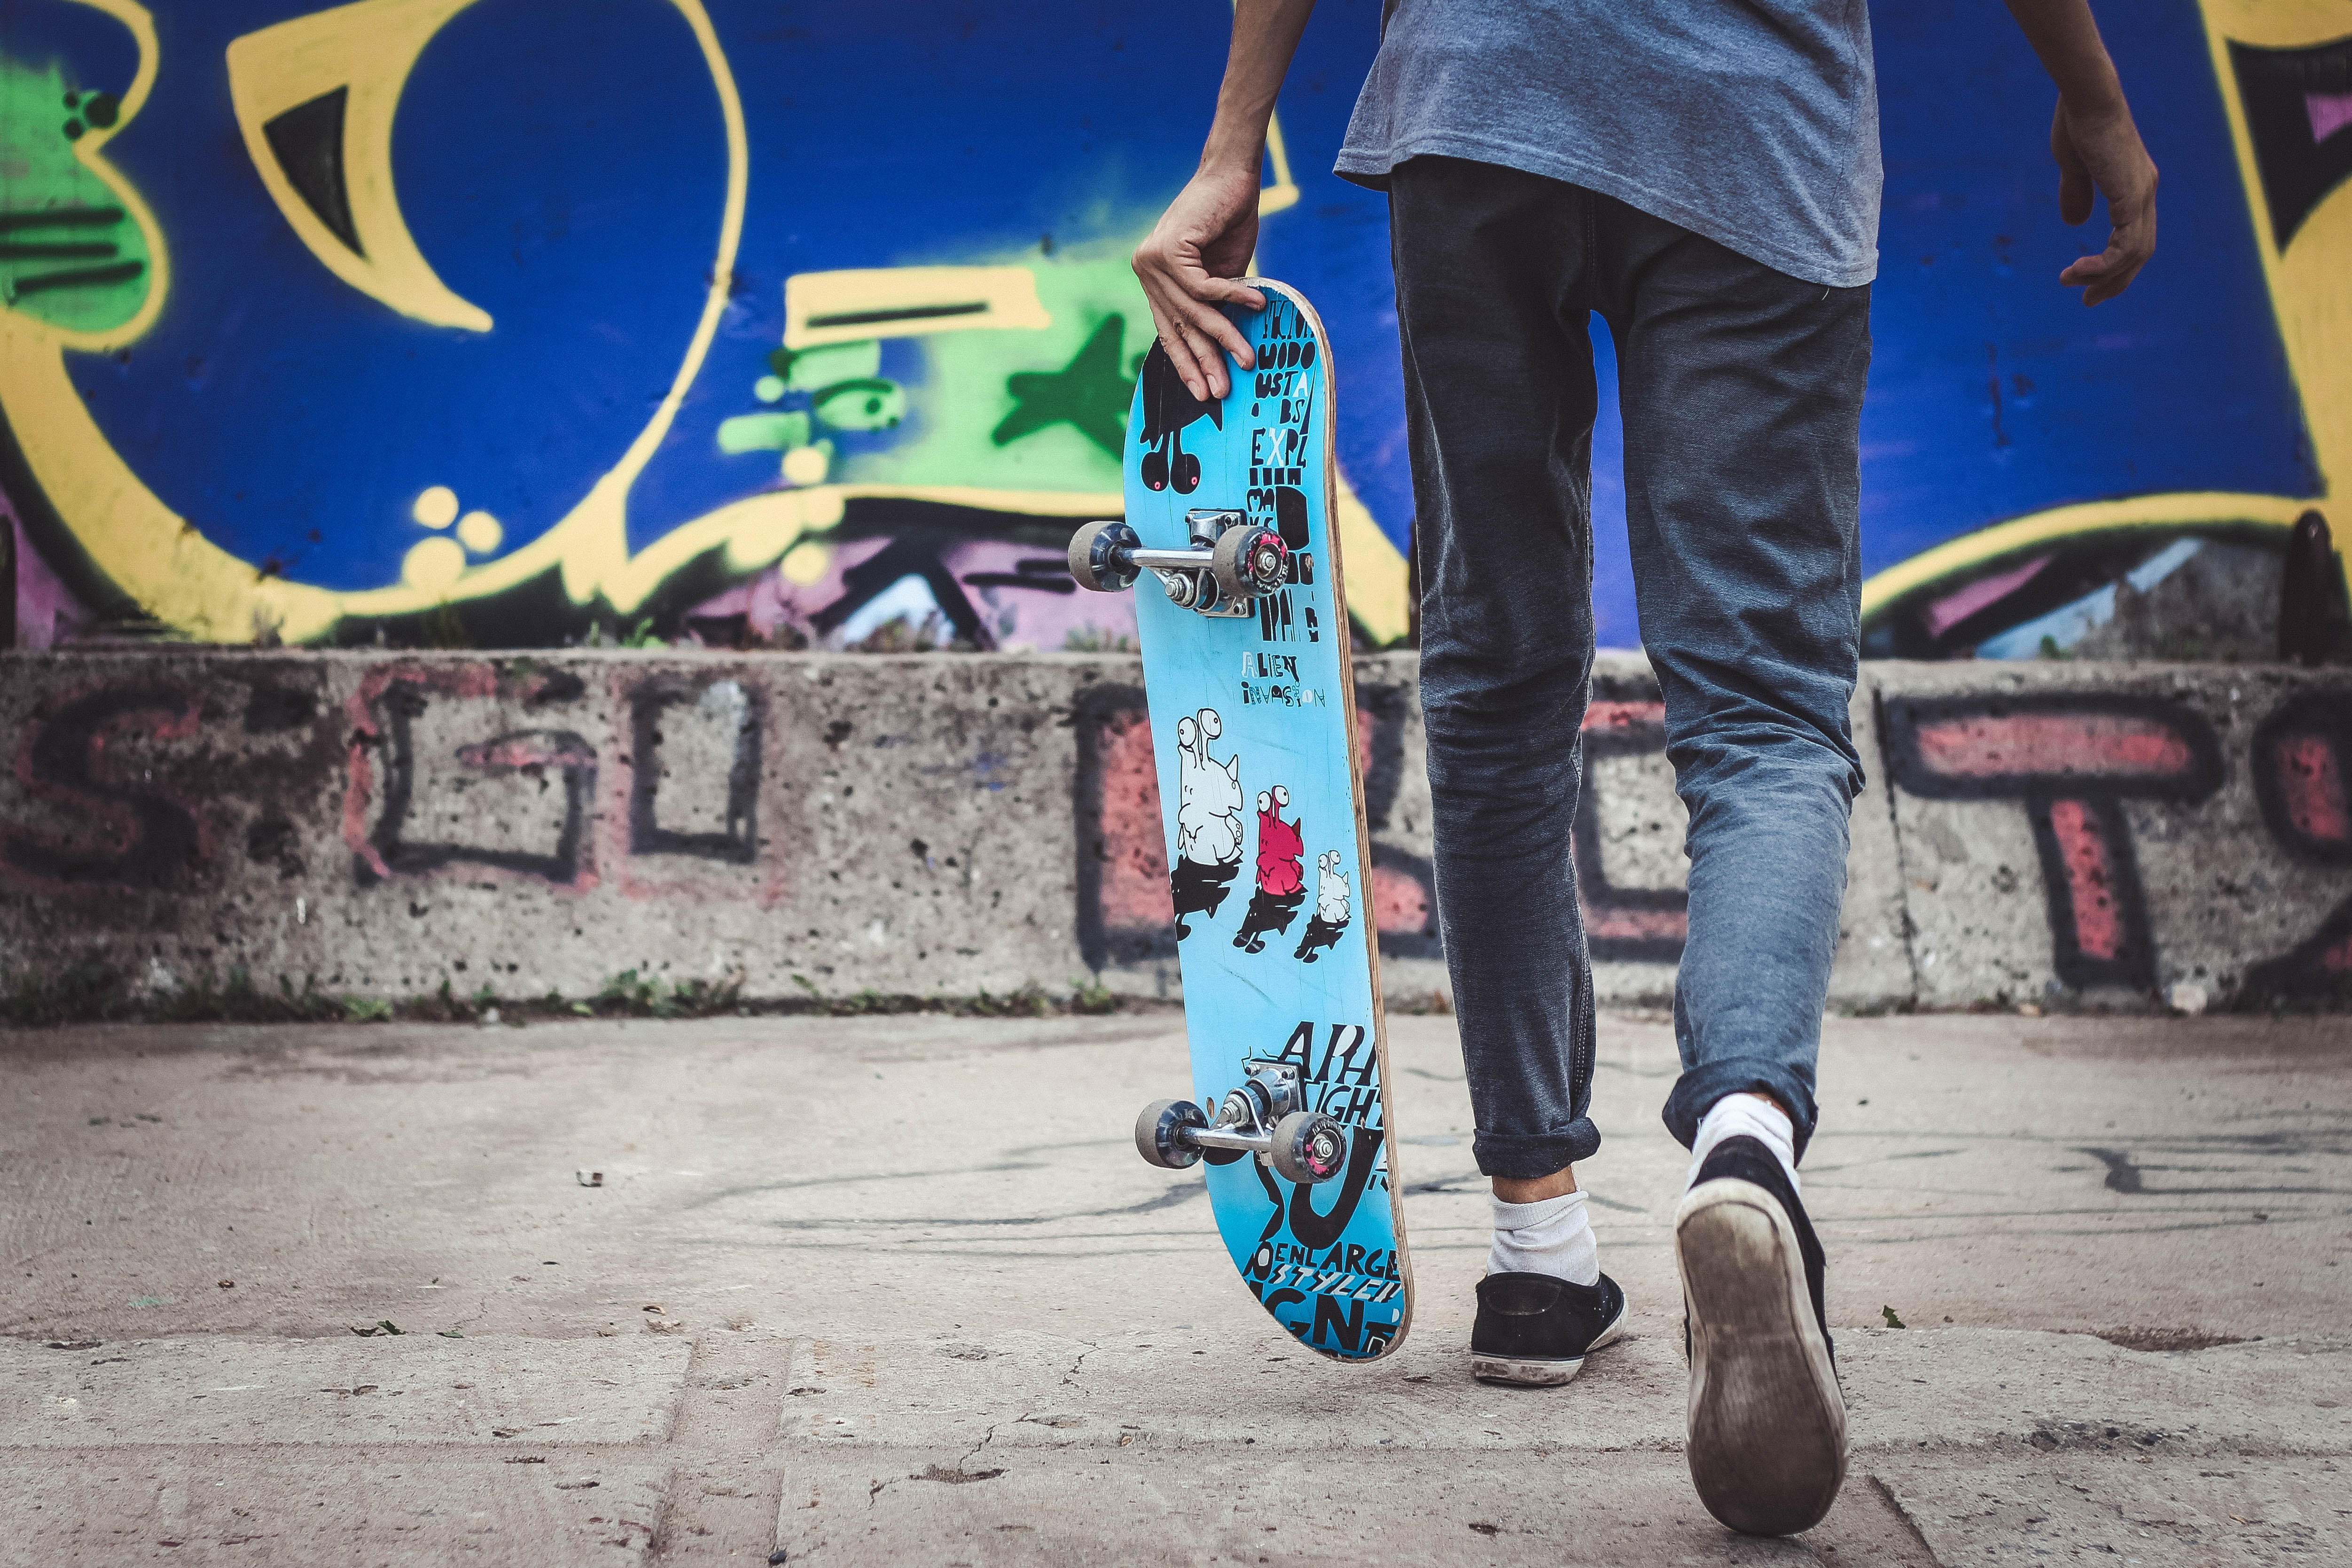 A person holds a decorated skateboard in front of a blue graffitied wall